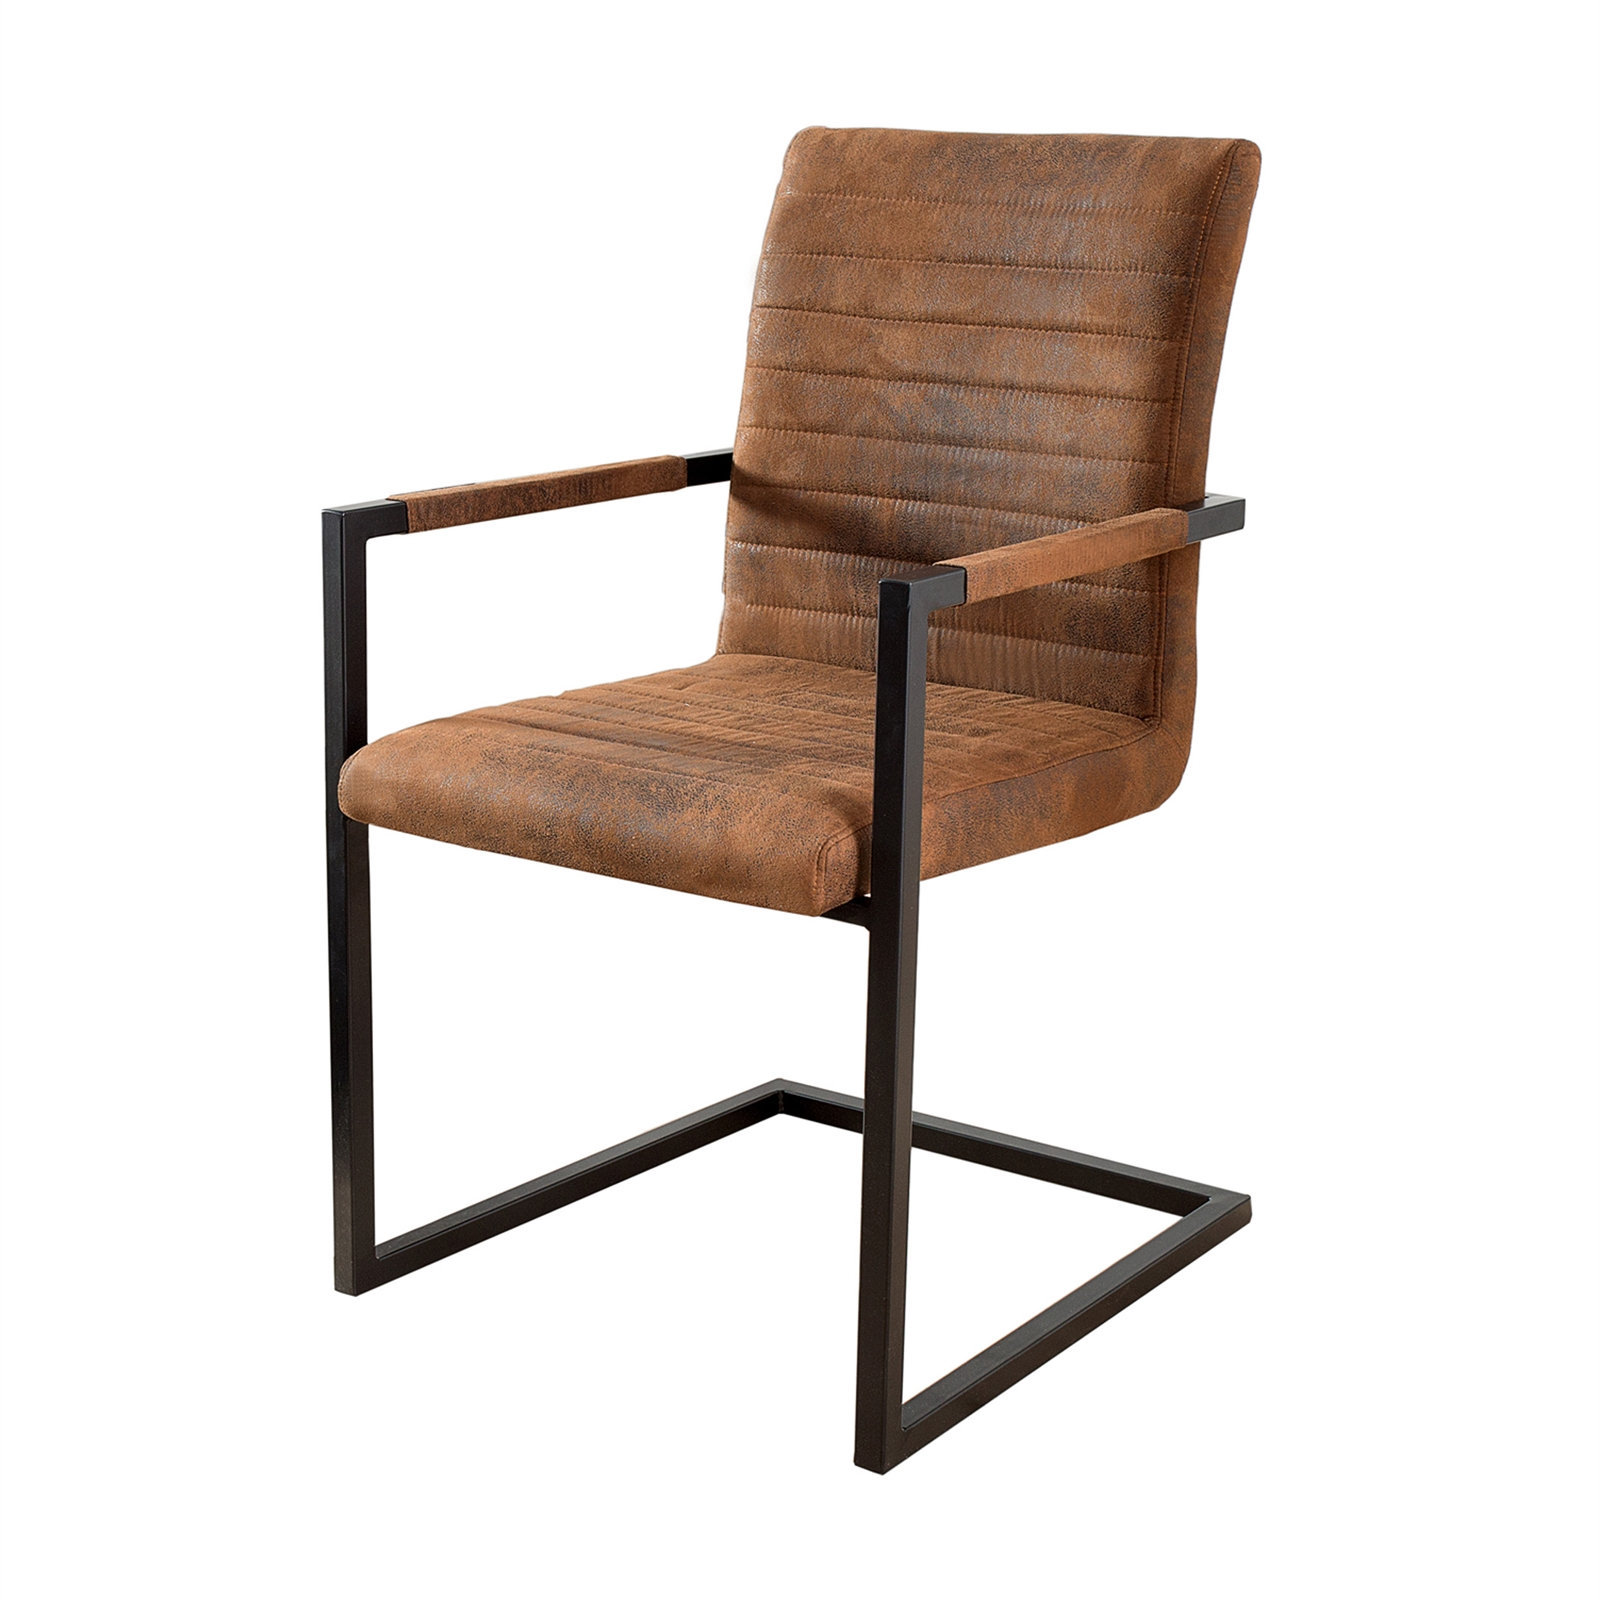 dining chair atlanta artificial leather black brown design